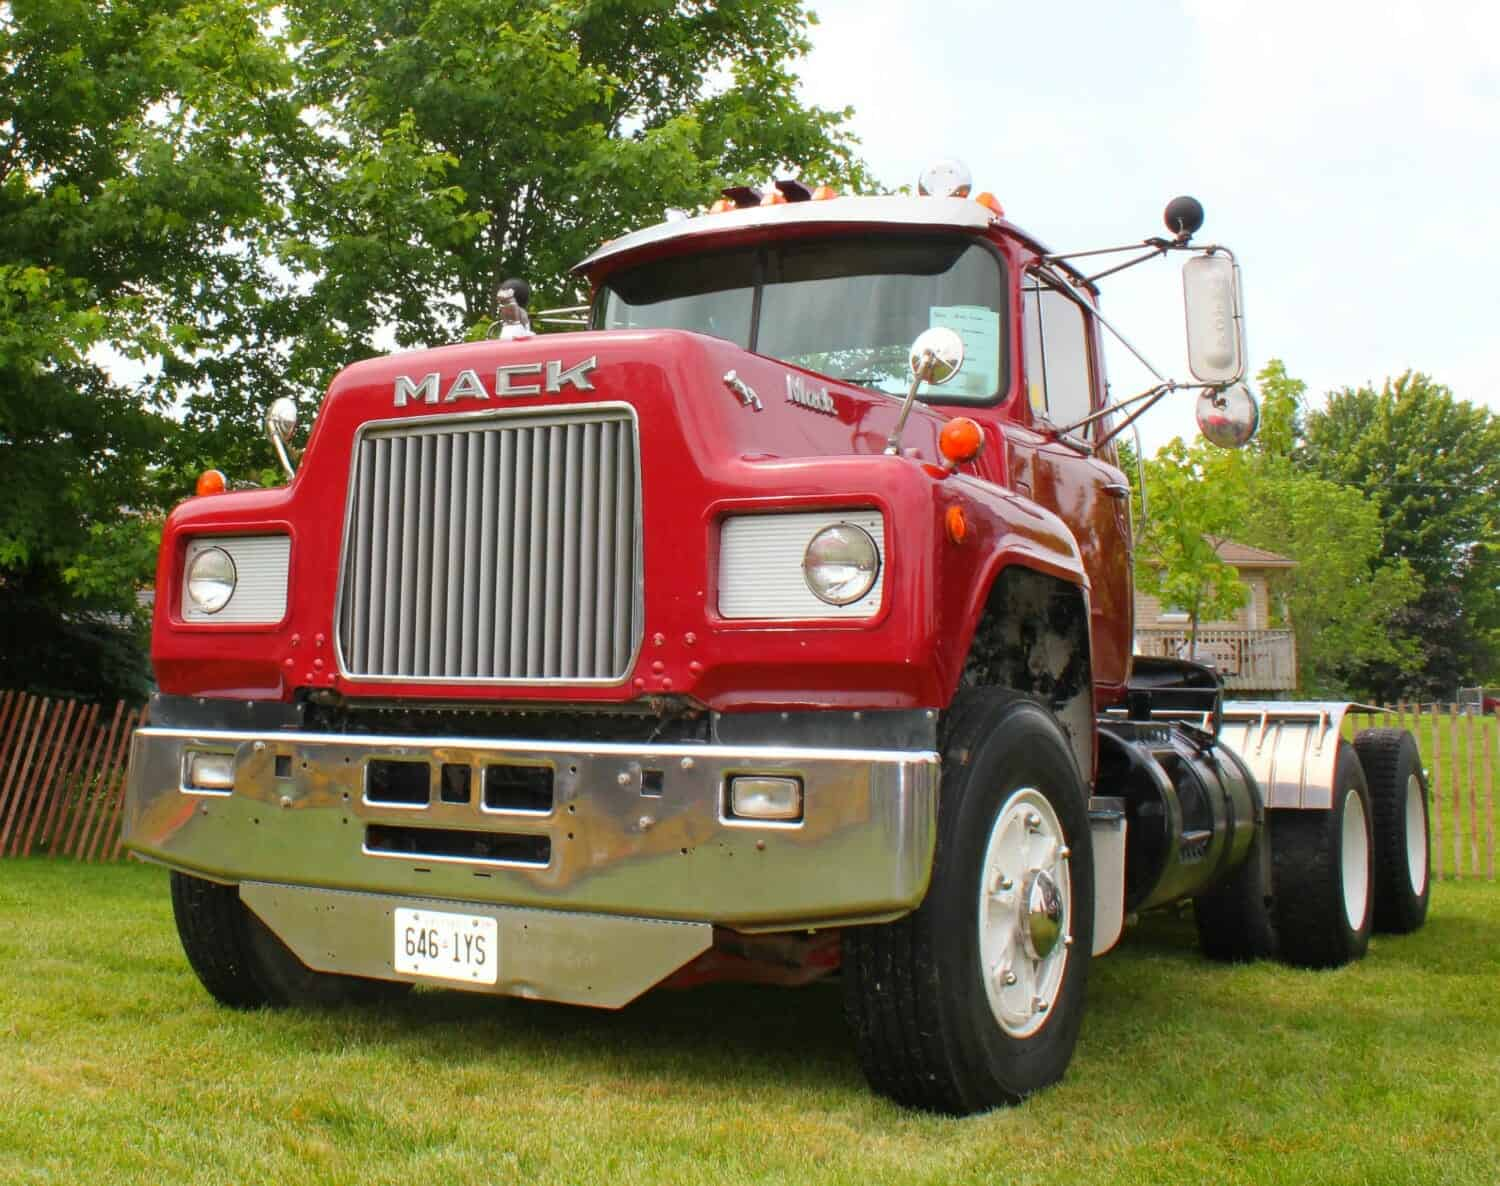 R Model Mack Show Truck : Mack truck pictures and memories